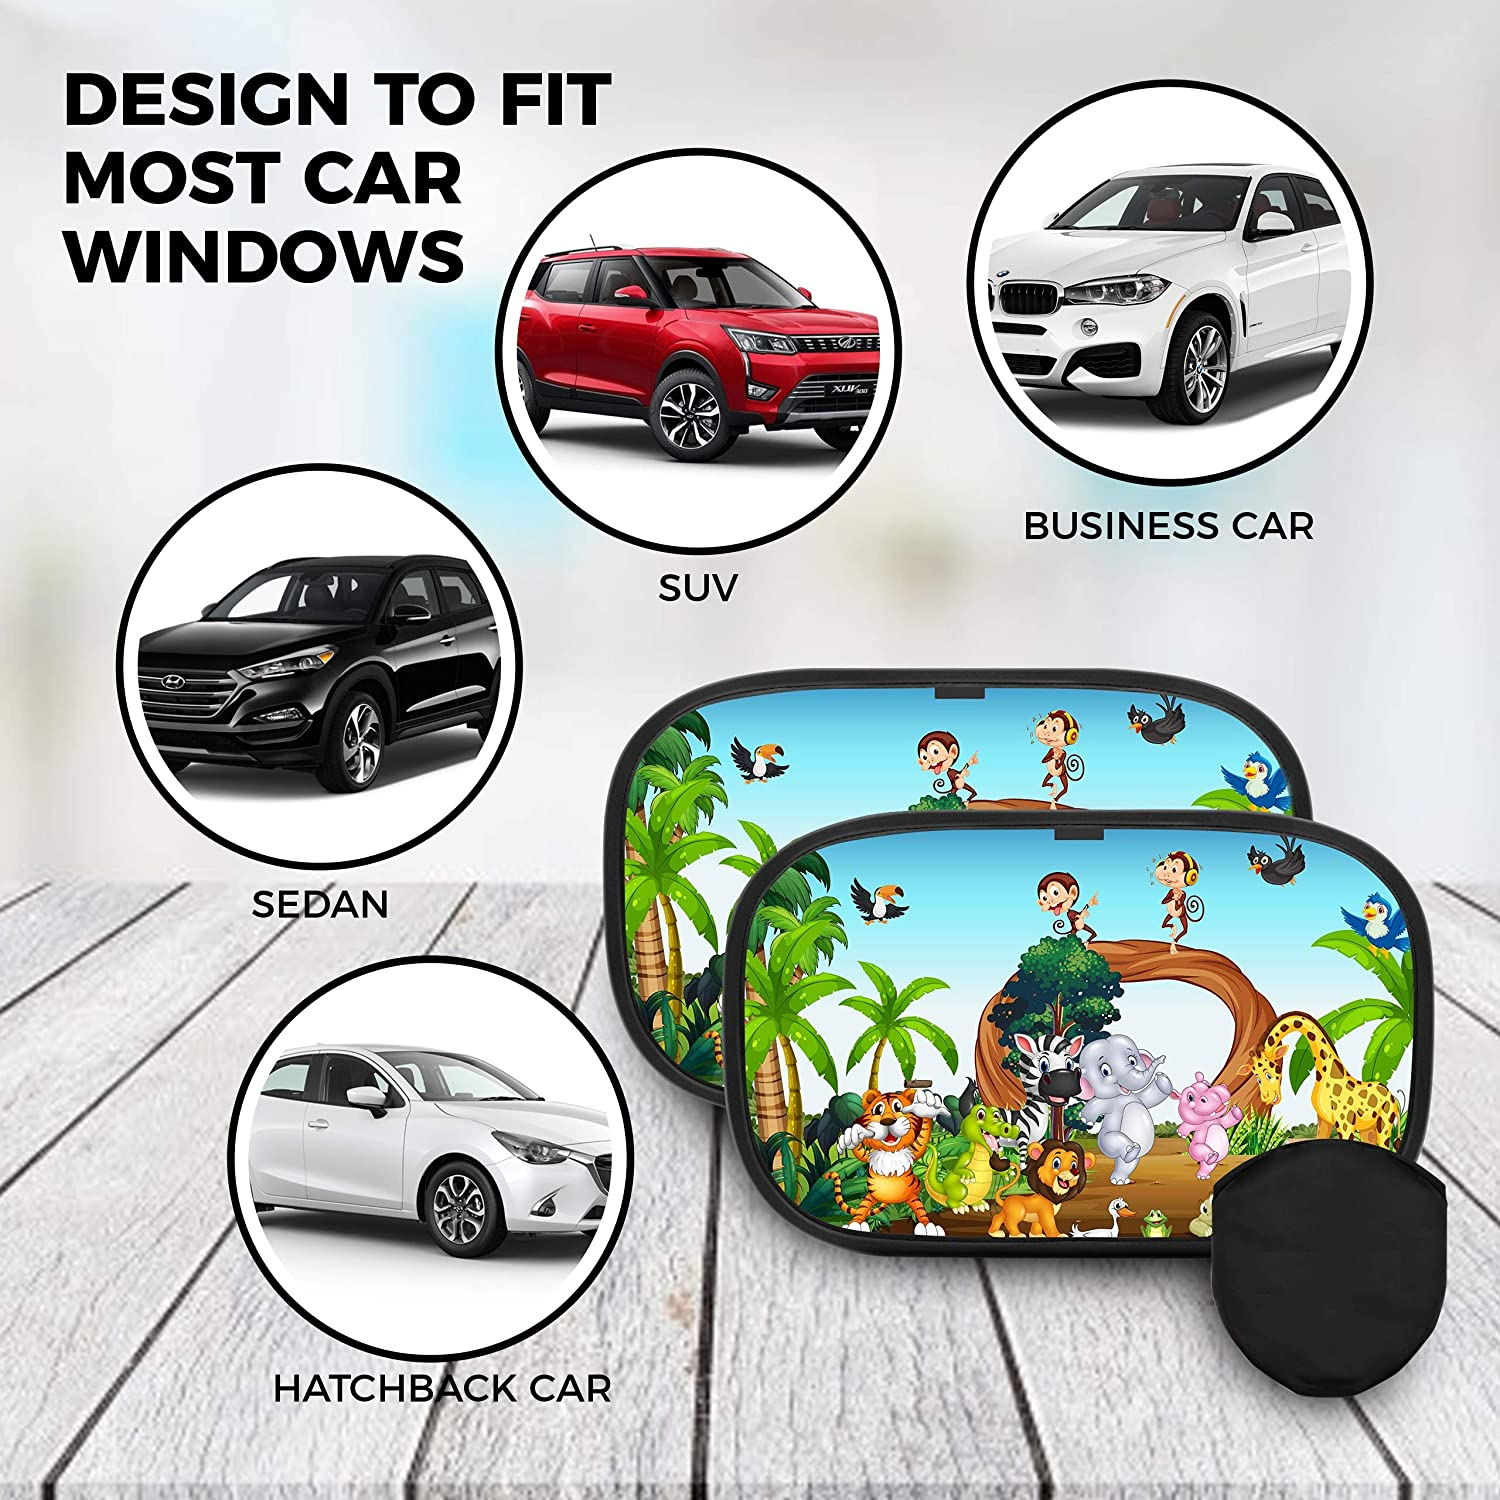 2 Pack Vehicle Window Blinds for Sun-Rays Protection Car Sun Shade for Kids Premium /& Durable Sunshades for Pets and Children Great Traveling Foldable Cling UV Blocker for Toddlers